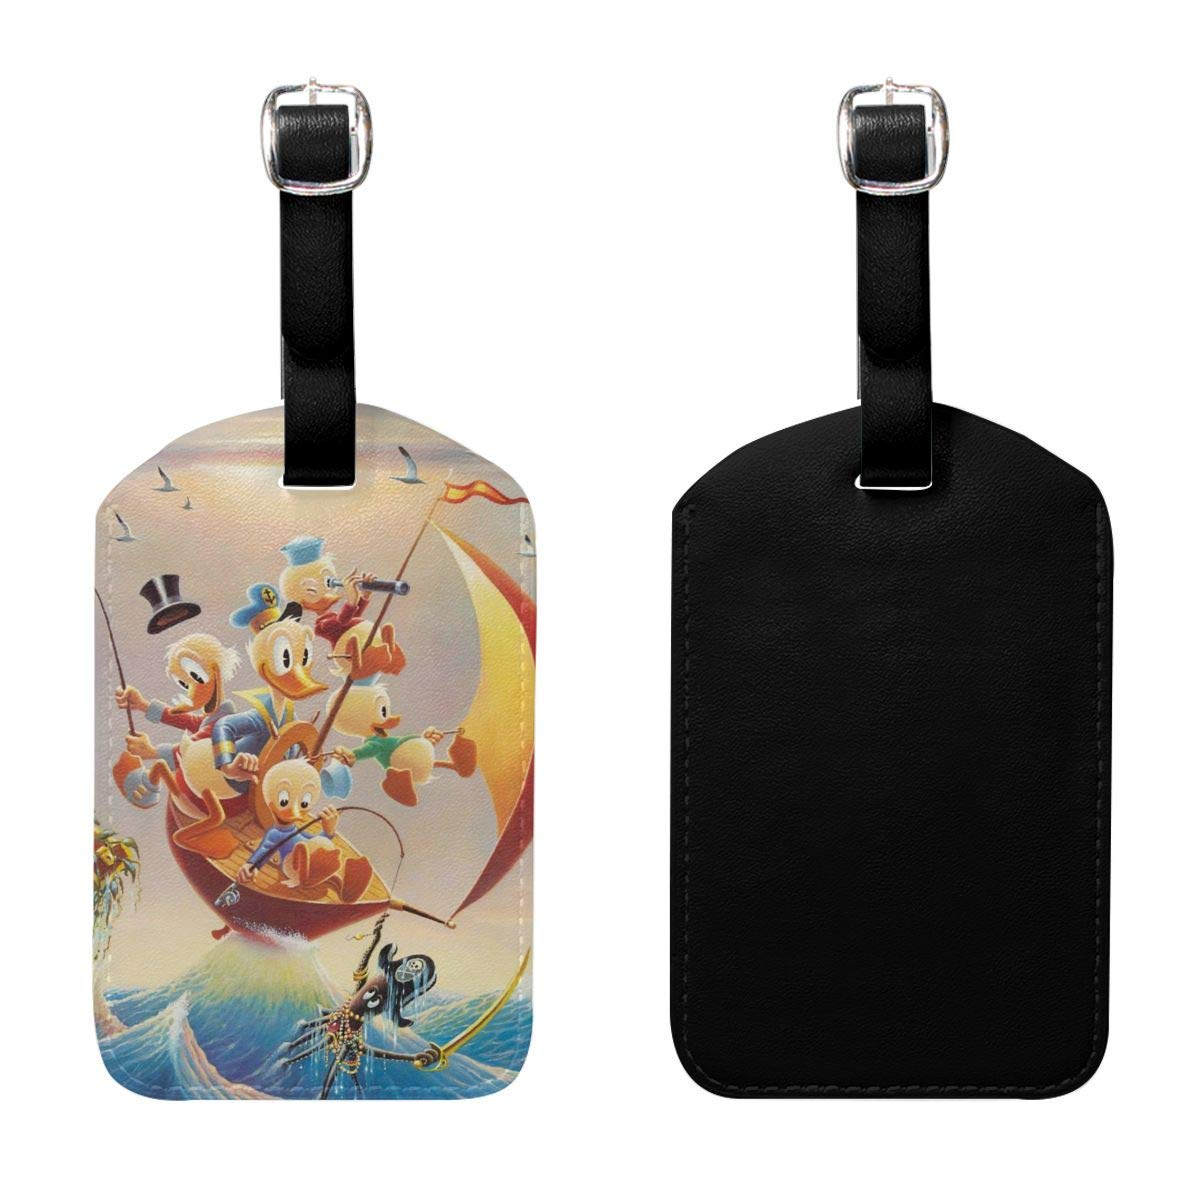 Set of 2 PU Leather Luggage Tags Donald Duck Fishing Suitcase Labels Bag Adjustable Leather Strap Travel Accessories